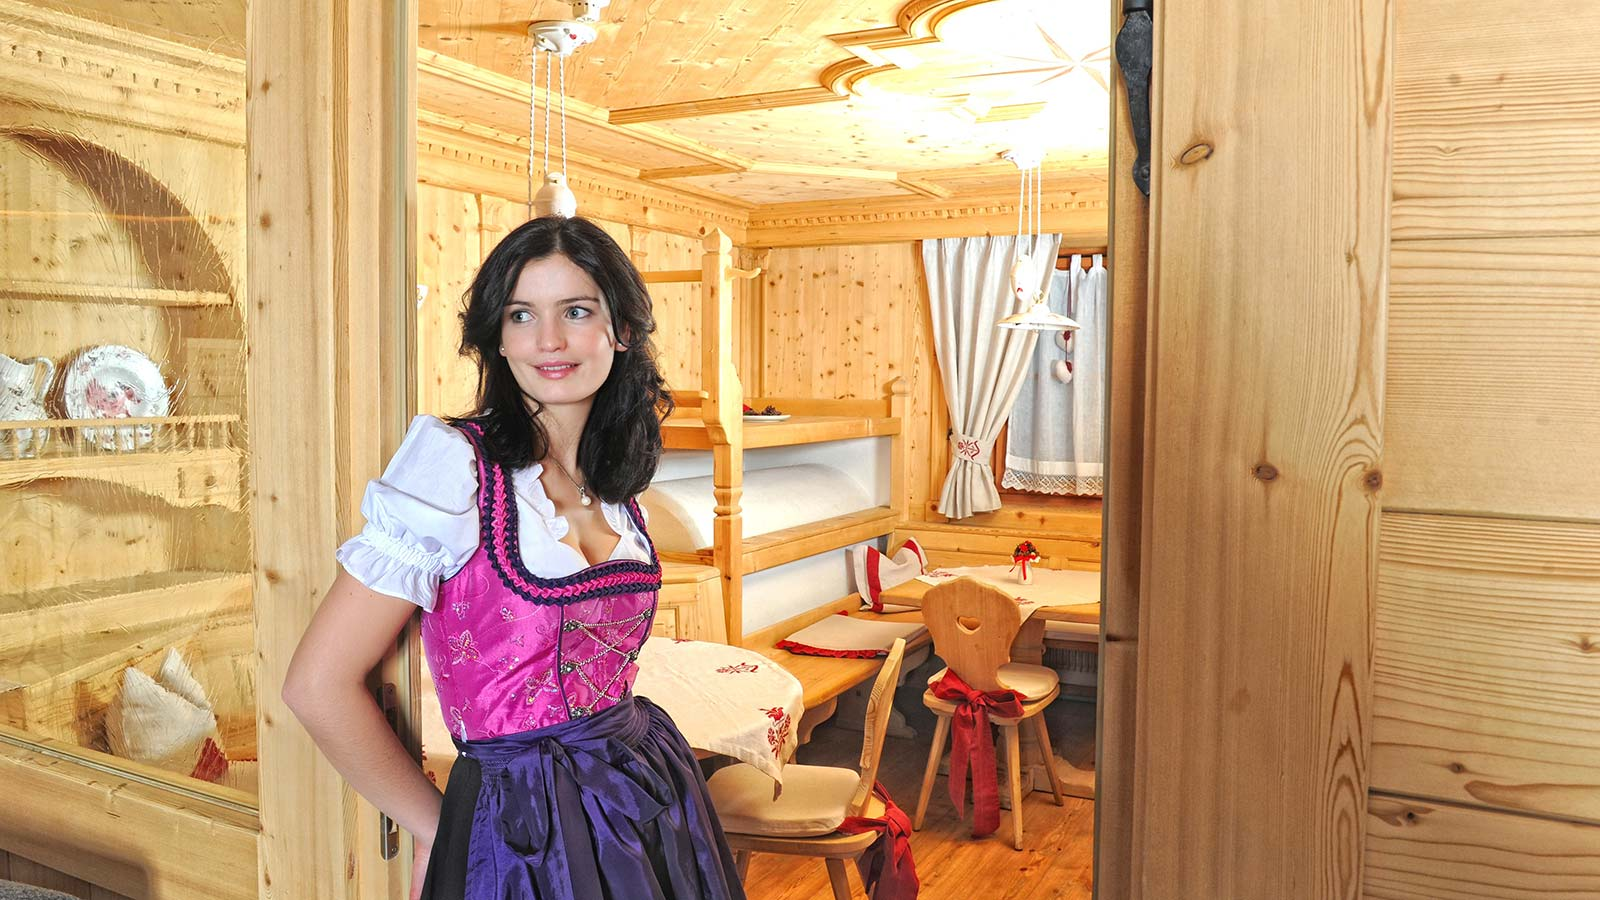 Girl with dirndl, traditional tyrolean dress, inside Hotel Teresa's stube